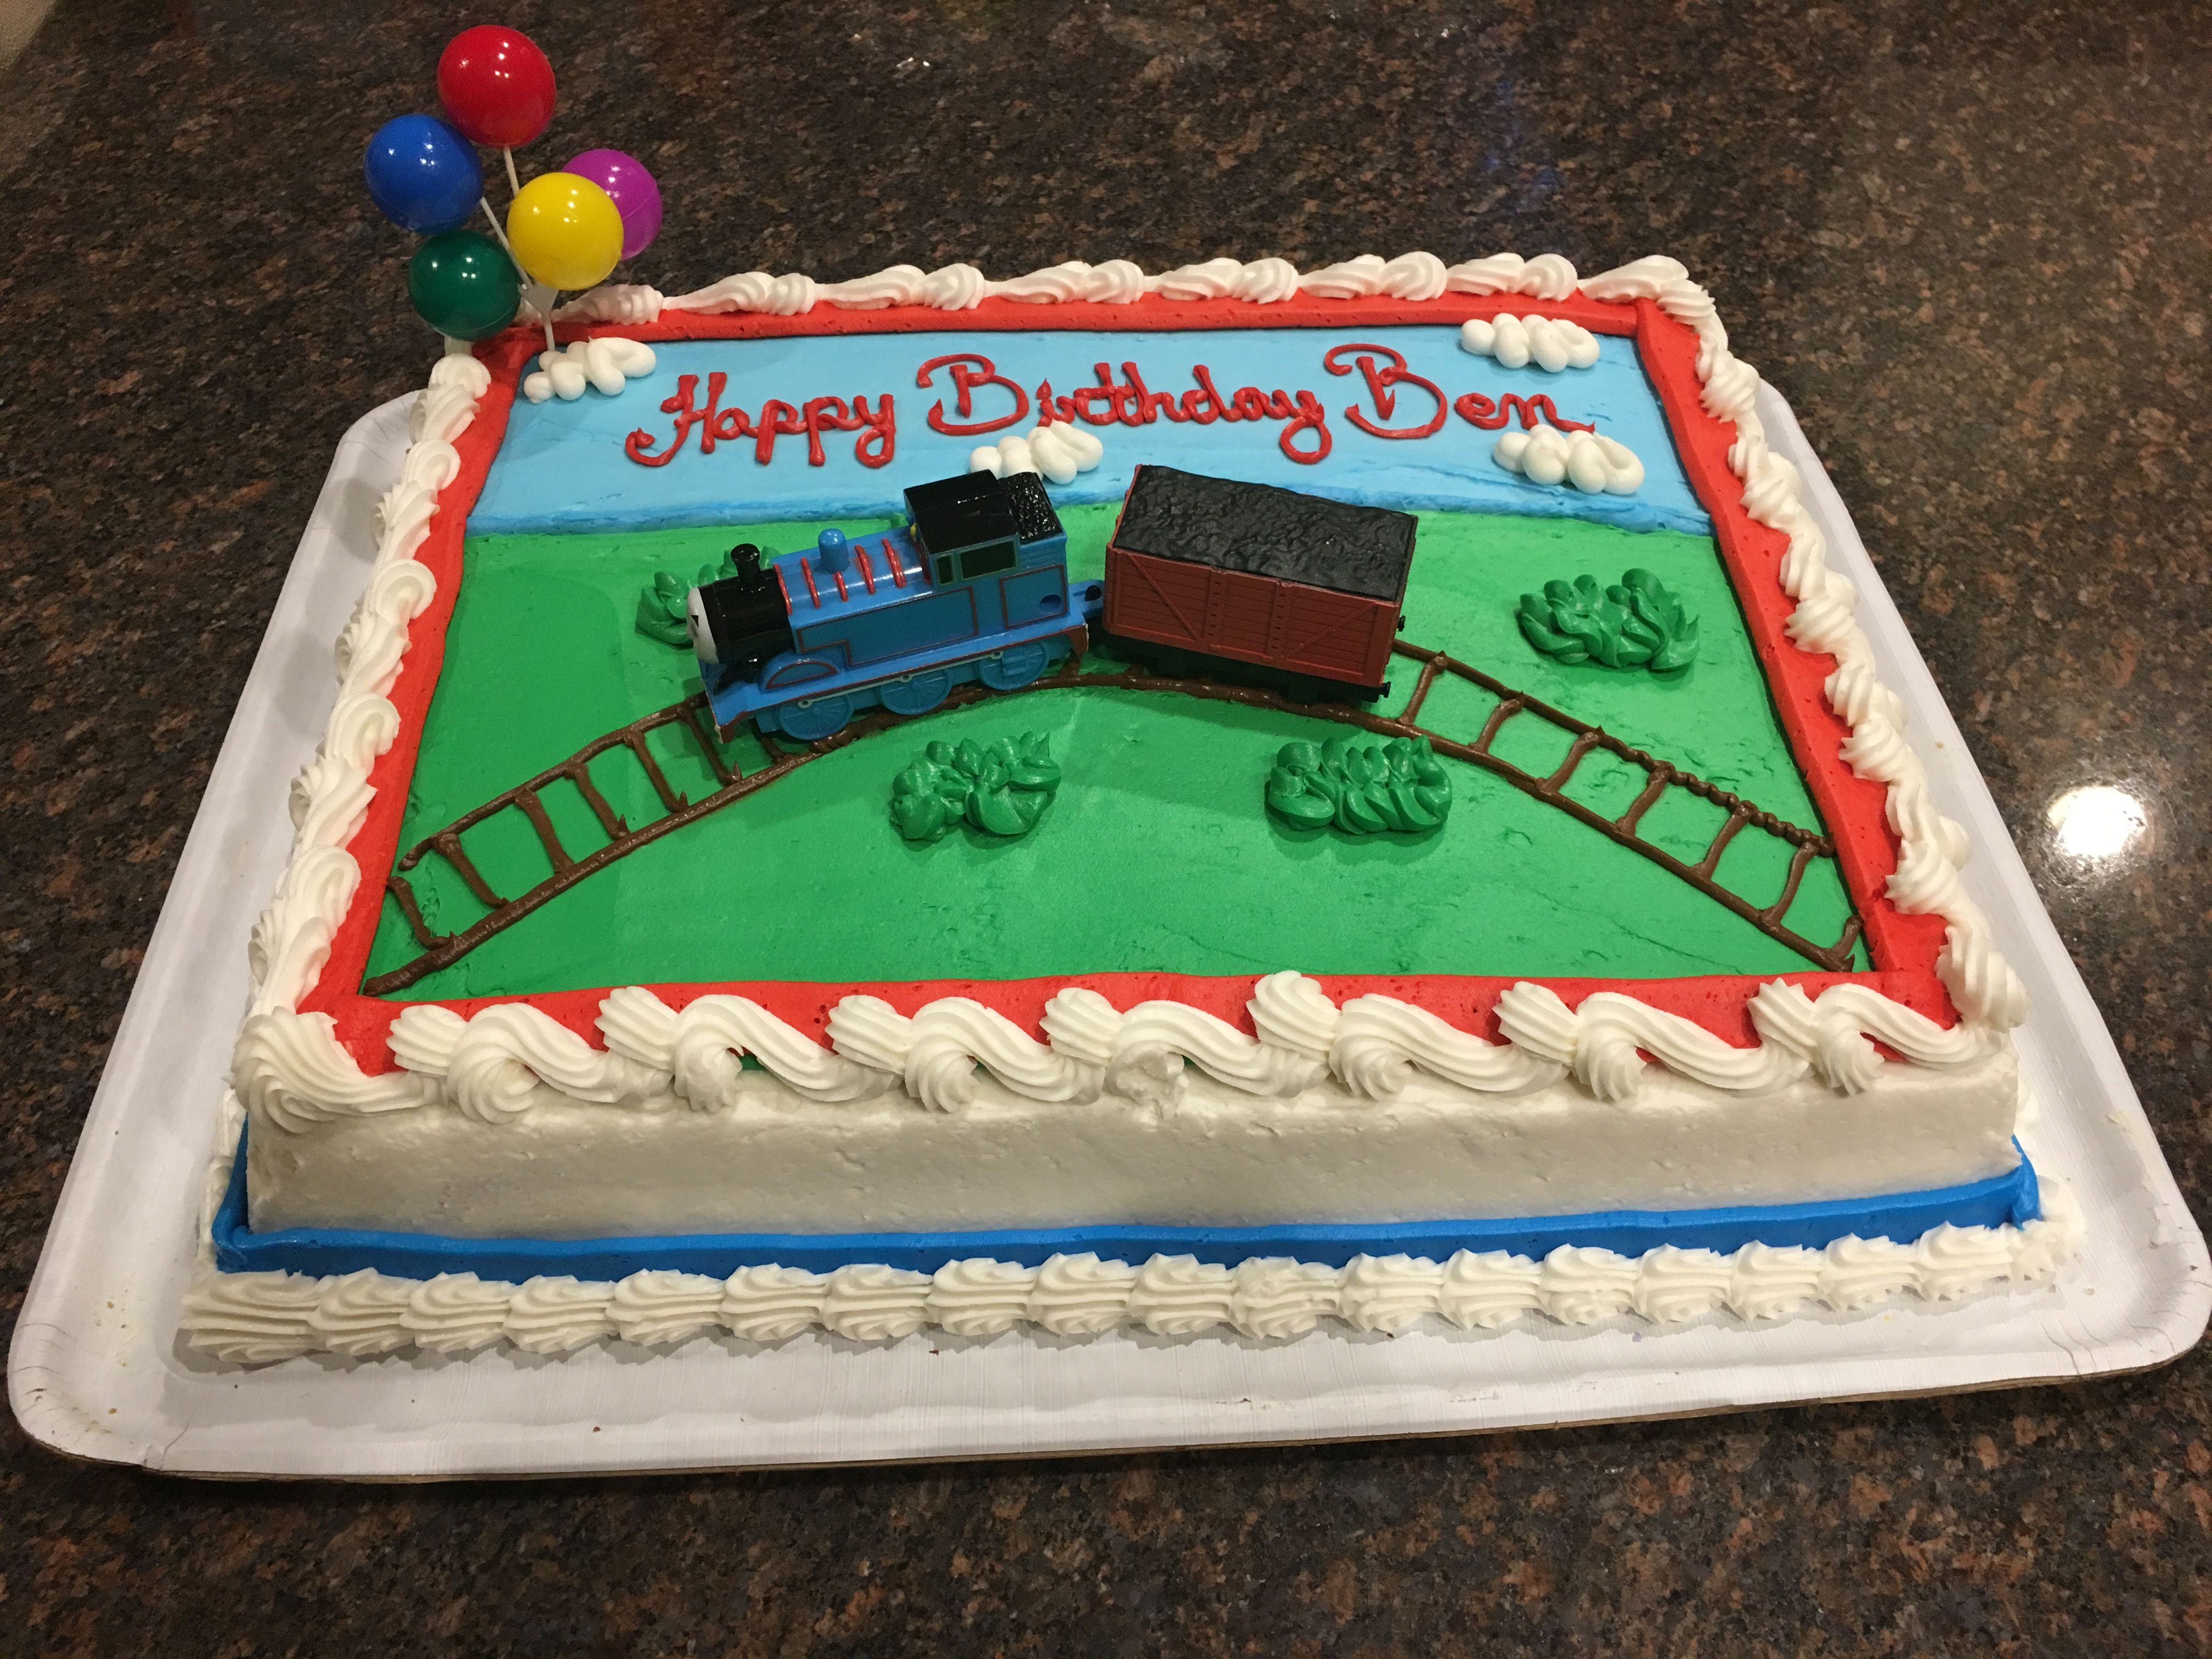 An Awesome Thomas The Train Cake Costco Helped Me Design For My